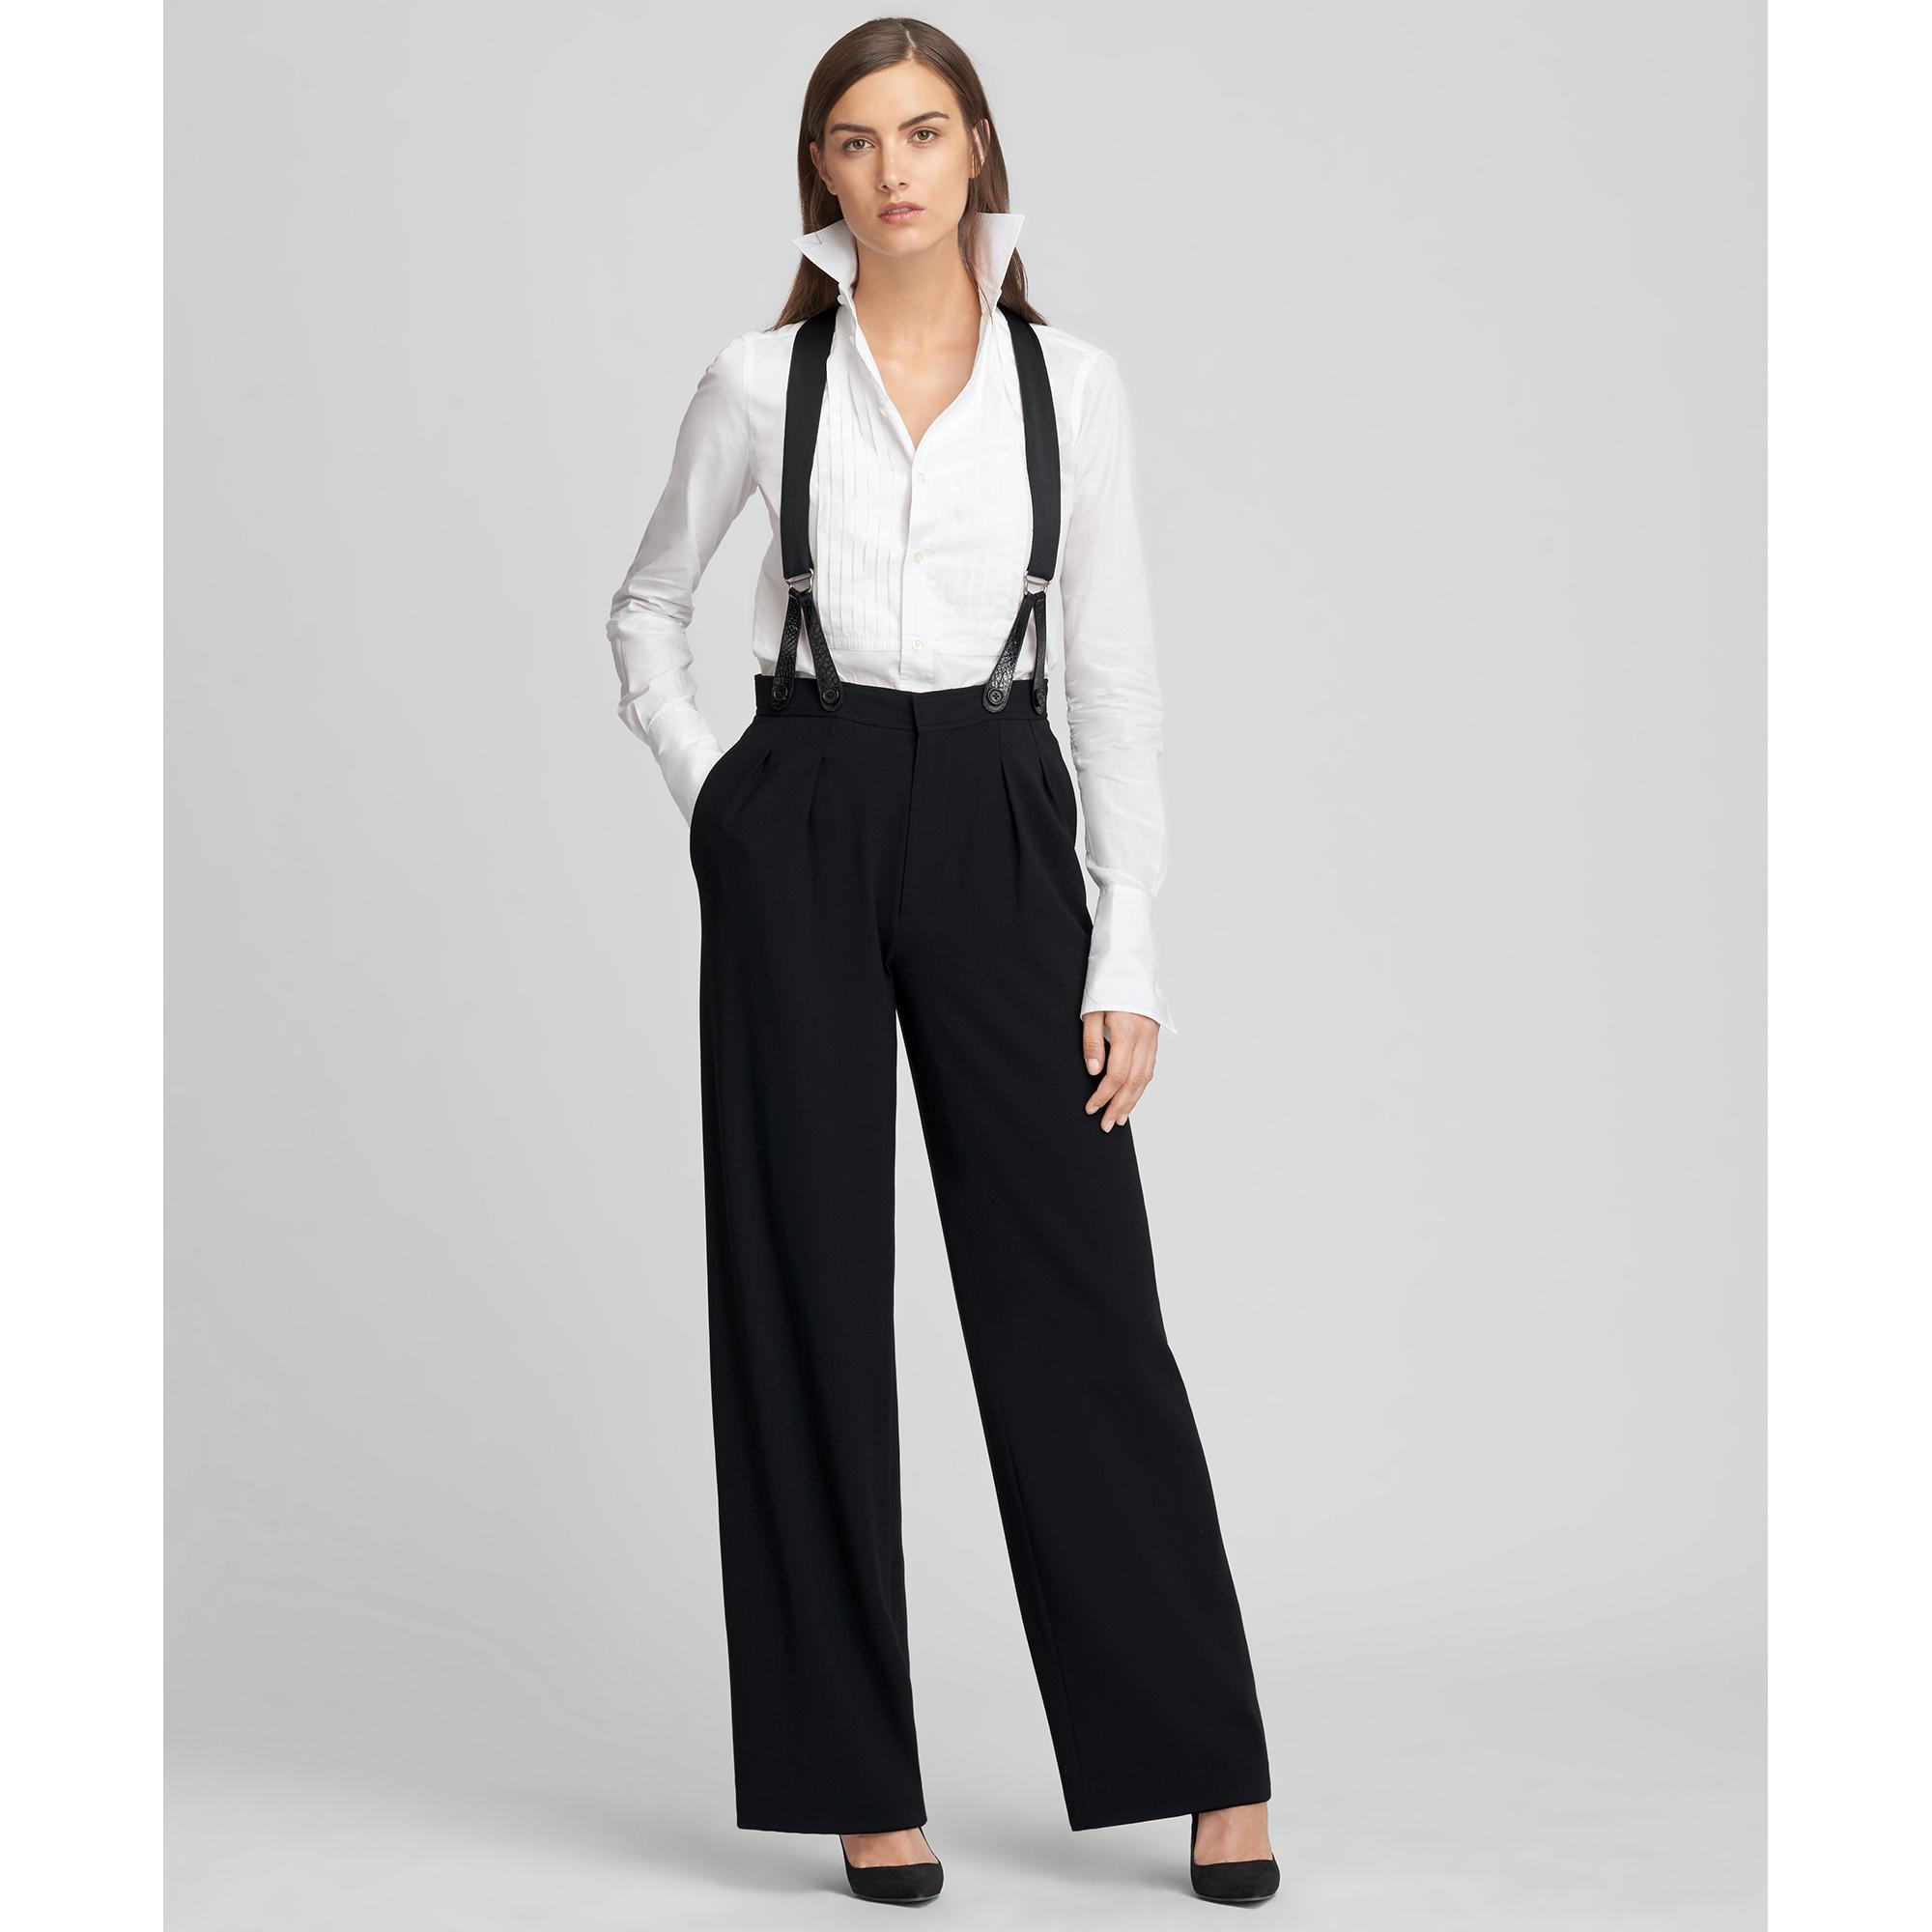 5362a242e6805 Lyst - Ralph Lauren Collection Haden Wool Crepe Wide-leg Pant in Black